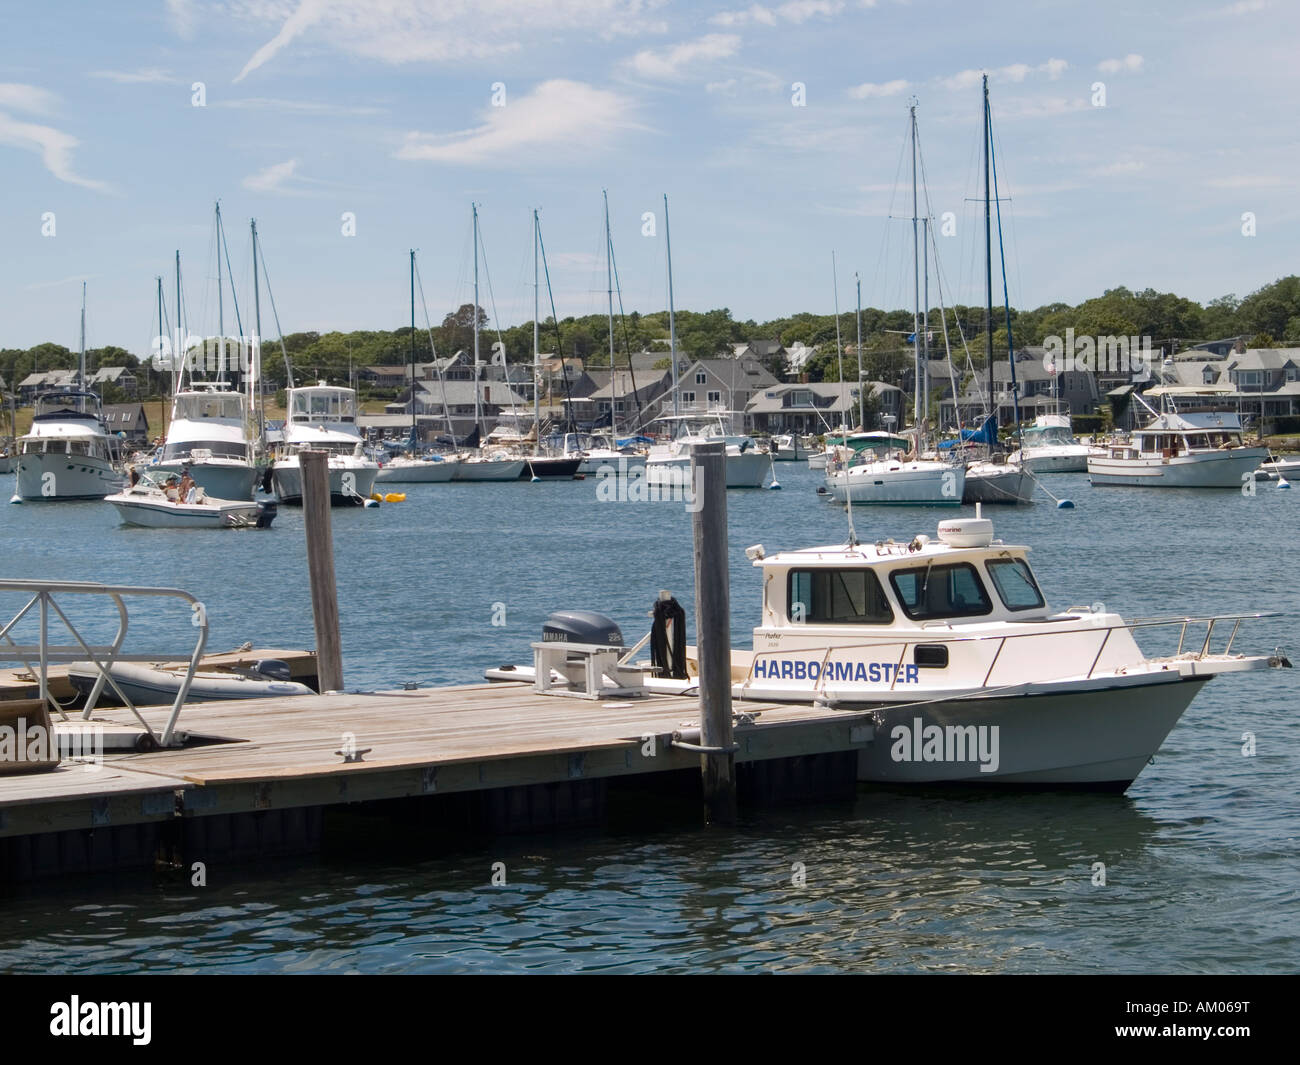 Boats in the harbour at Oak Bluffs, Martha's Vineyard USA - Stock Image